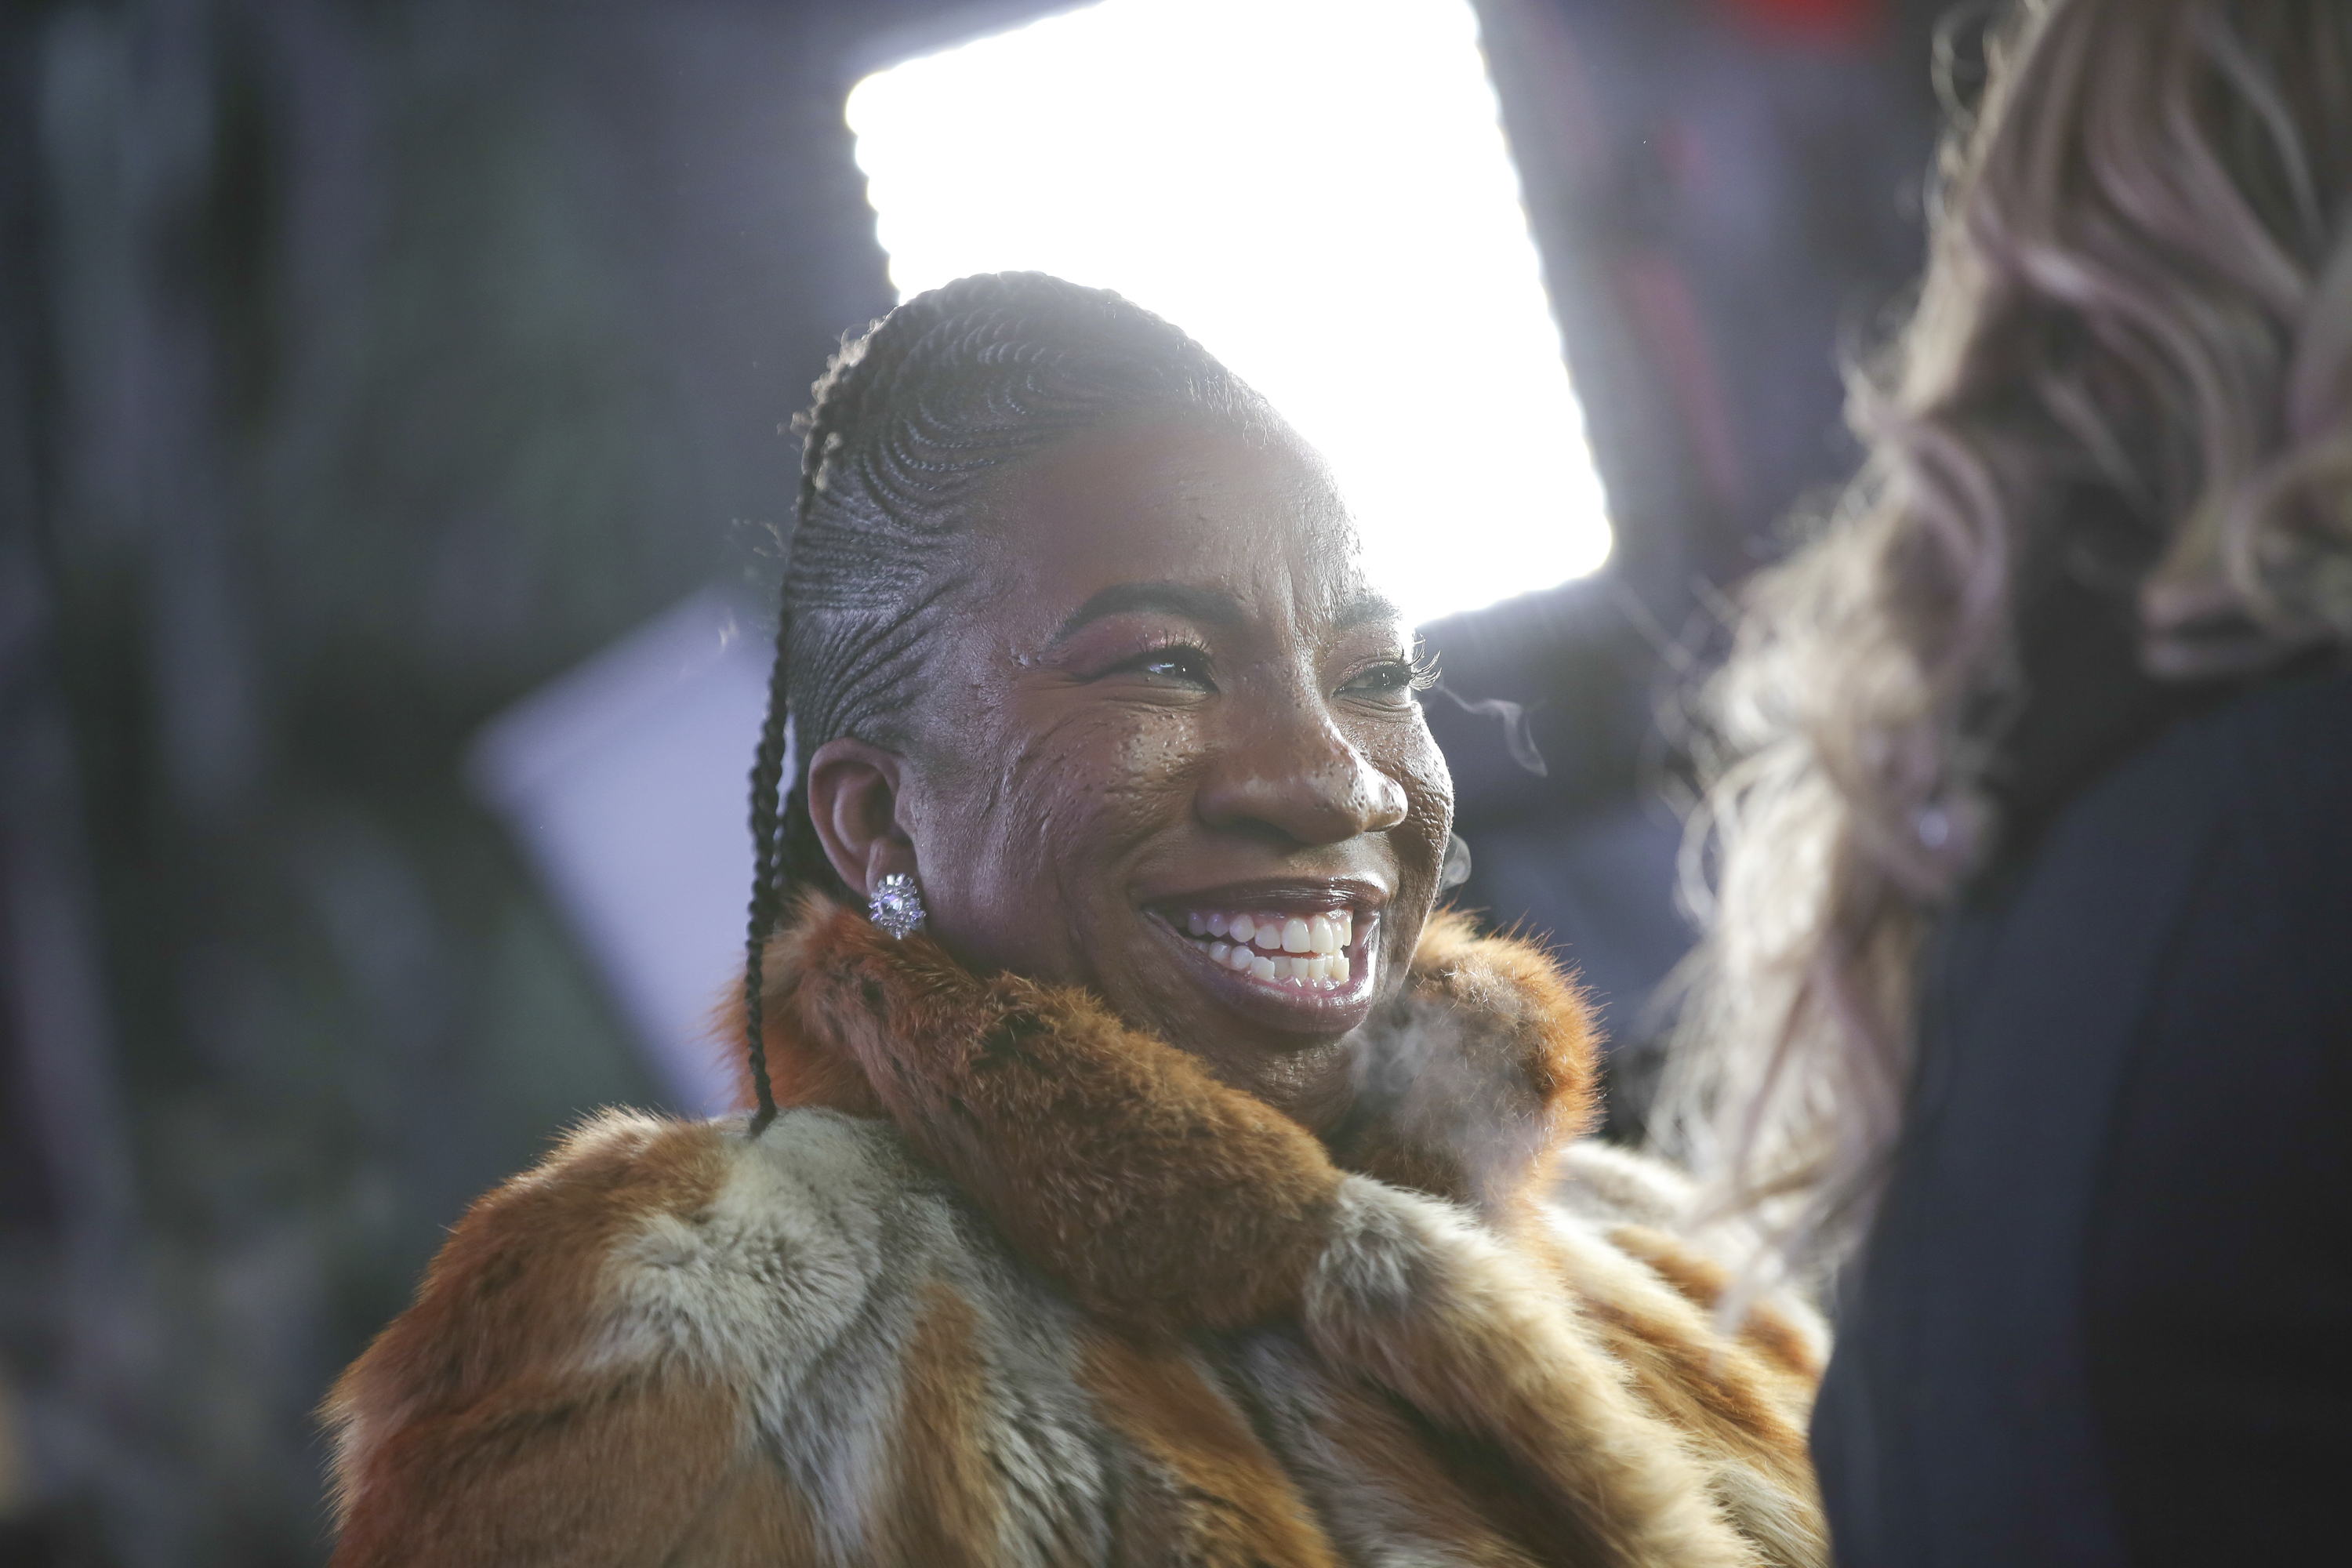 "<div class=""meta image-caption""><div class=""origin-logo origin-image ap""><span>AP</span></div><span class=""caption-text"">Activist Tarana Burke speaks on stage at the New Year's Eve celebration in Times Square on Sunday, Dec. 31, 2017, in New York. (Photo by Brent N. Clarke/Invision/AP) (Brent N. Clarke/Invision/AP)</span></div>"